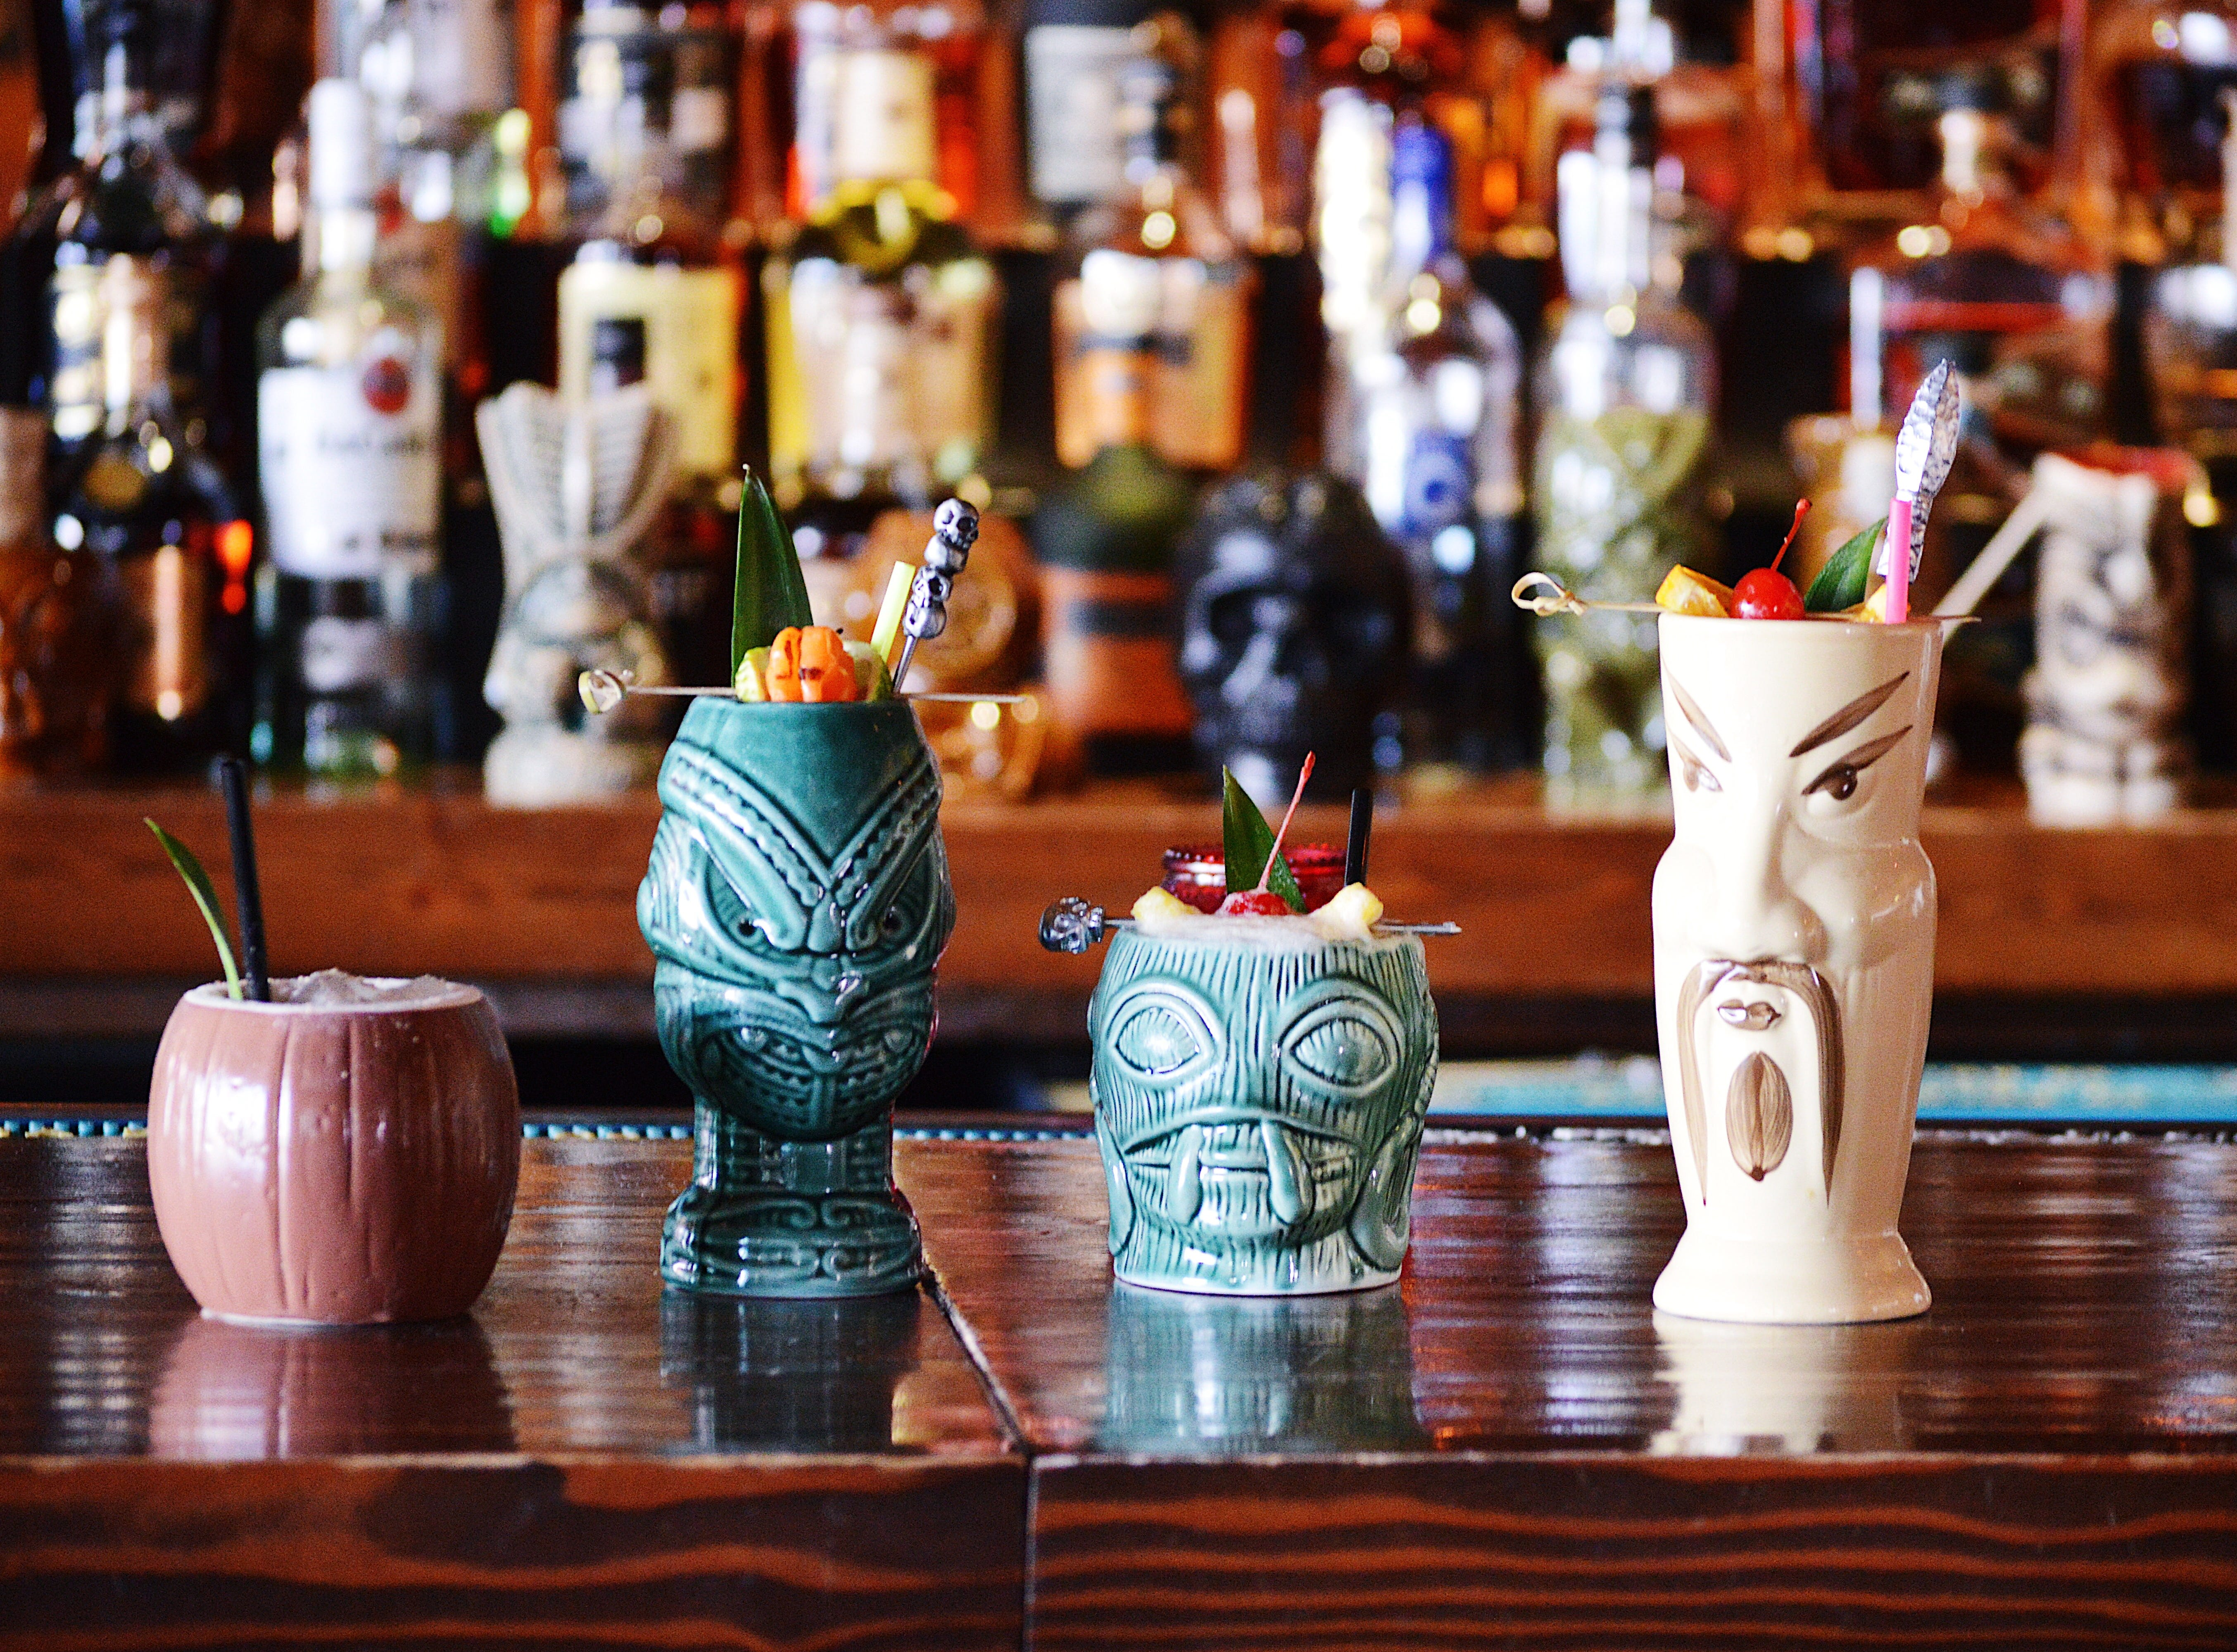 Held on Thursday, April 11, 2019 from 3:30 to 6 pm, and open to the general public, Tiki fans from around the world are invited to swing by Hula's Scottsdale location for Tiki Time Happy Hour.